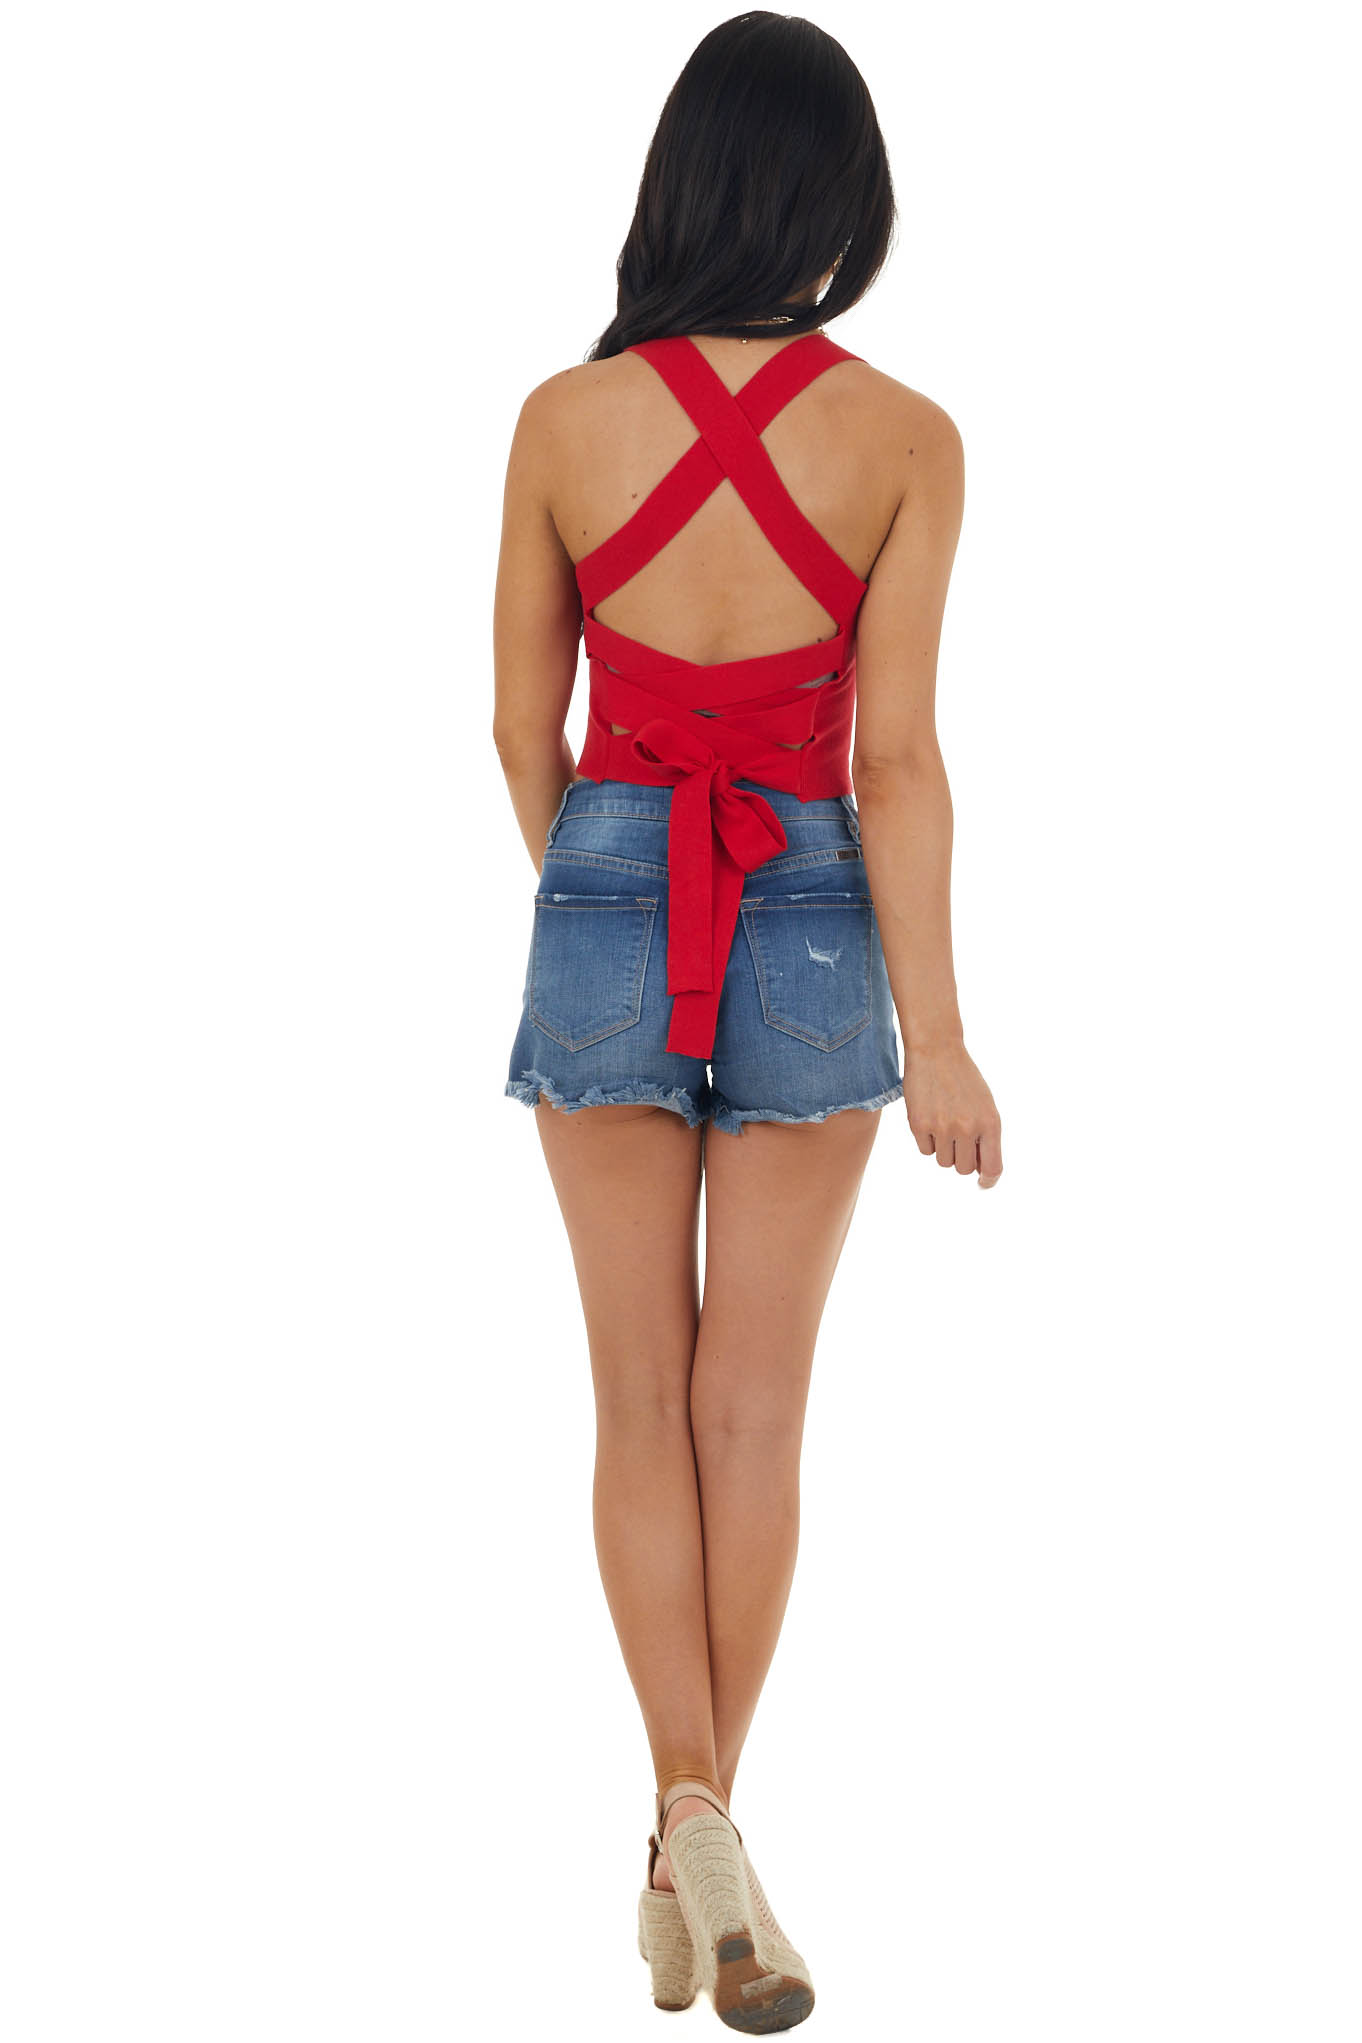 Cherry Ribbed Knit Criss Cross Back Crop Top